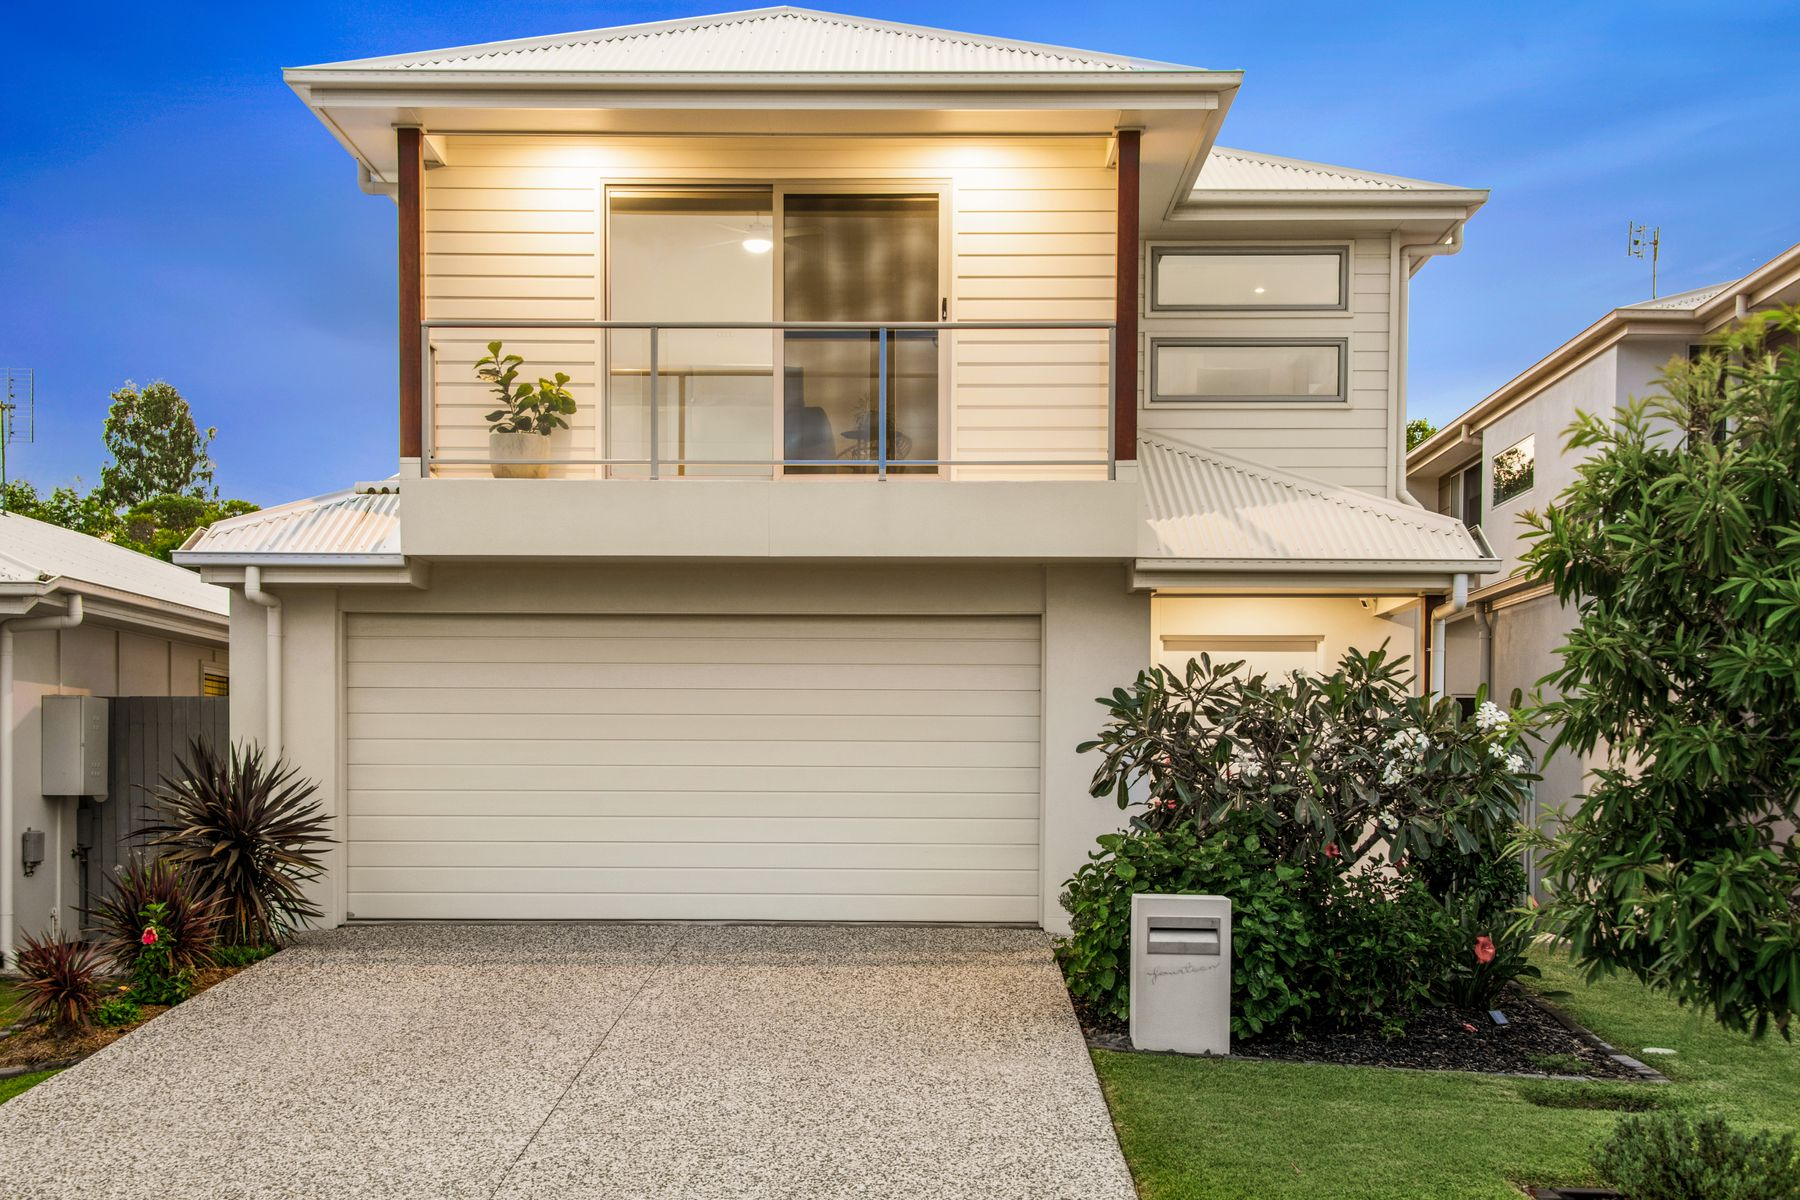 14 Cavalry Way, Sippy Downs, QLD 4556